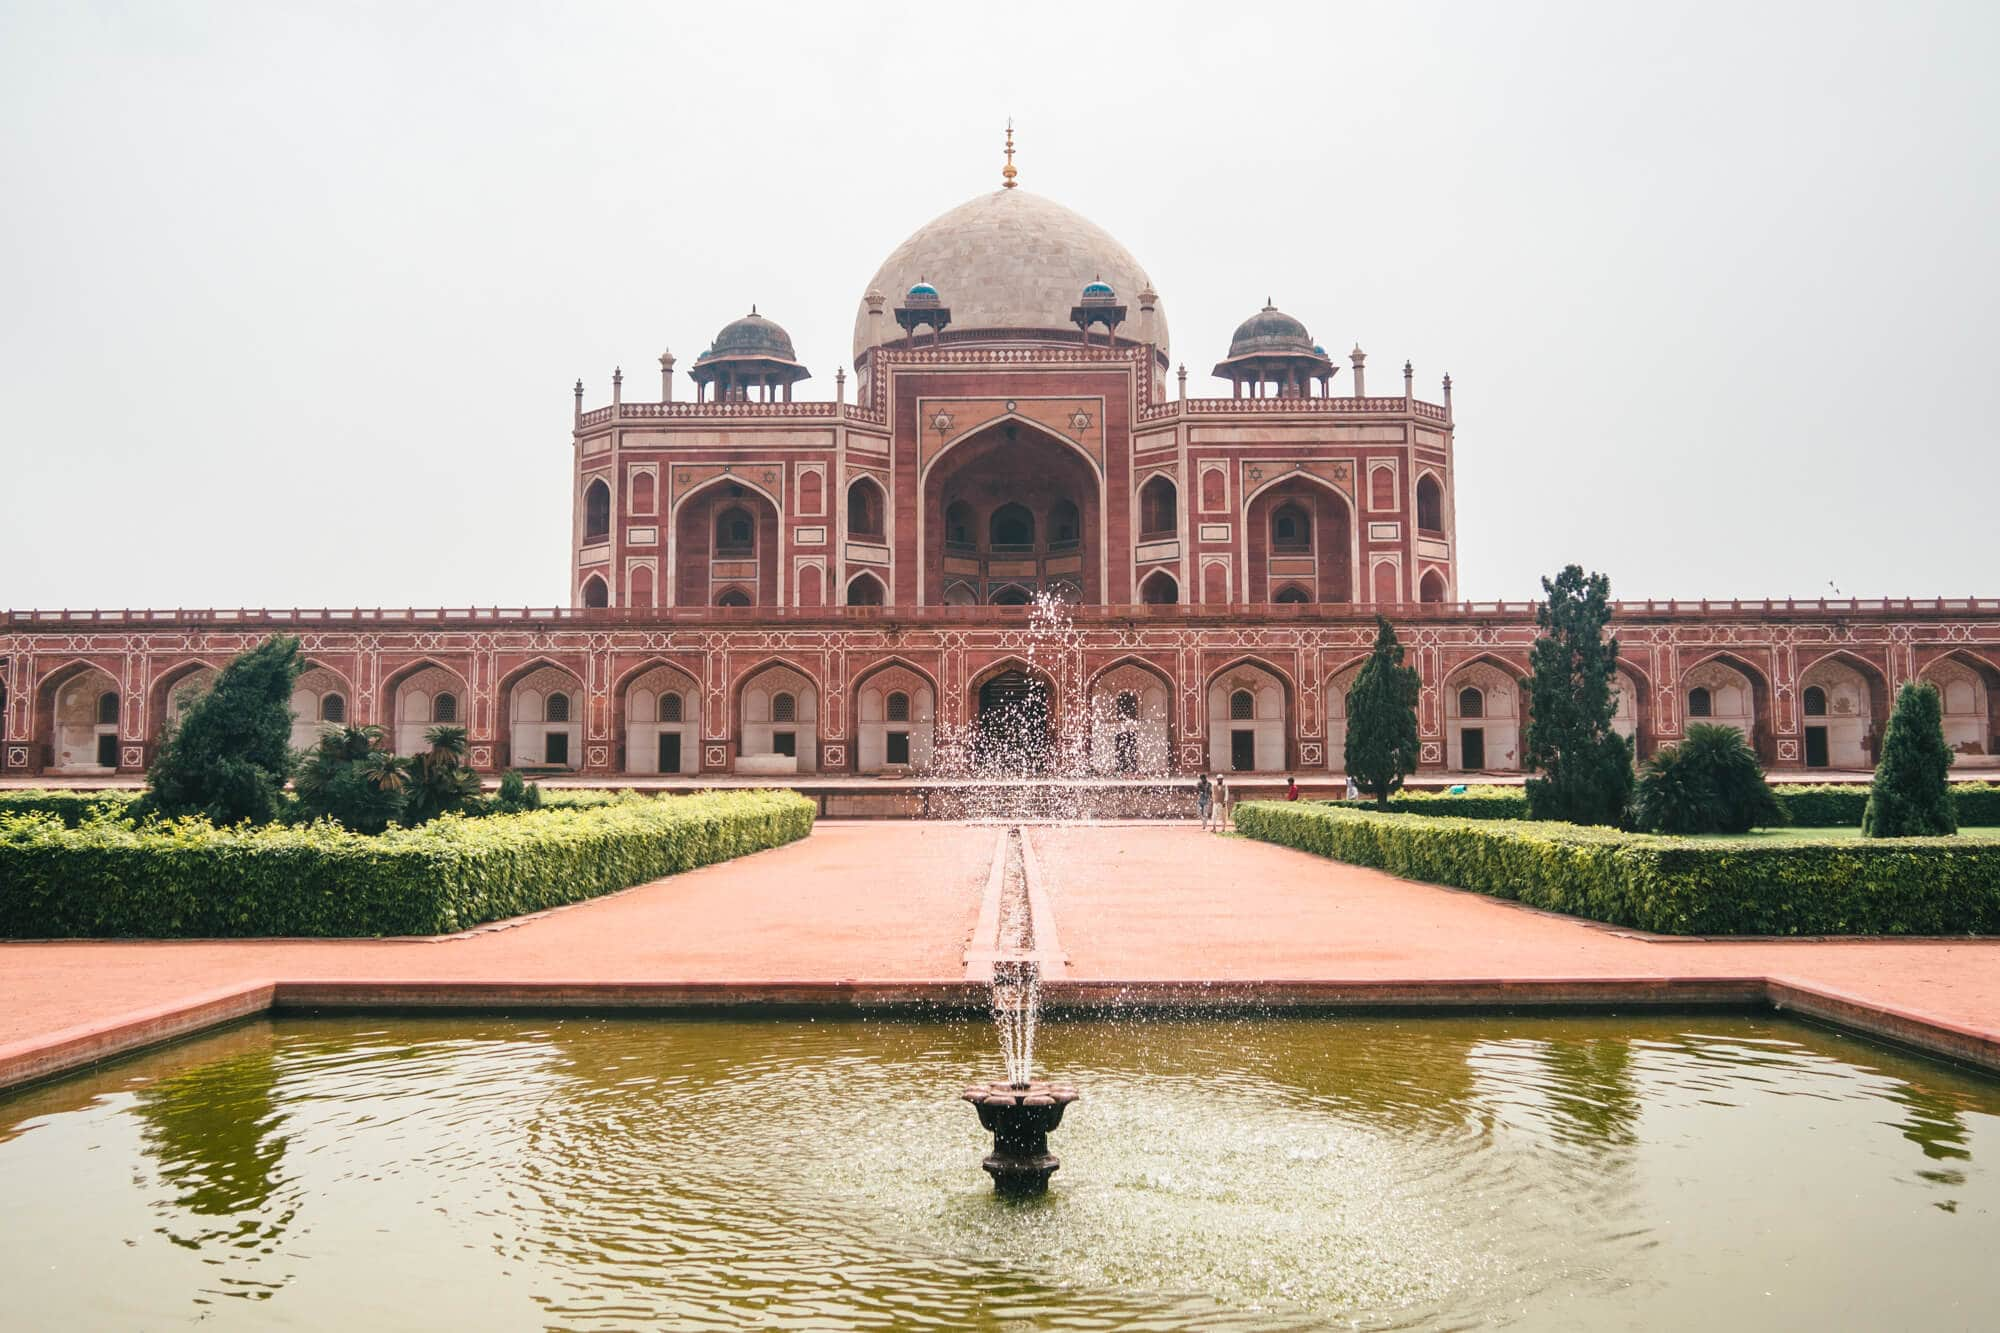 A first timer's guide to Delhi, India - Humayun's Tomb the highlight of Delhi